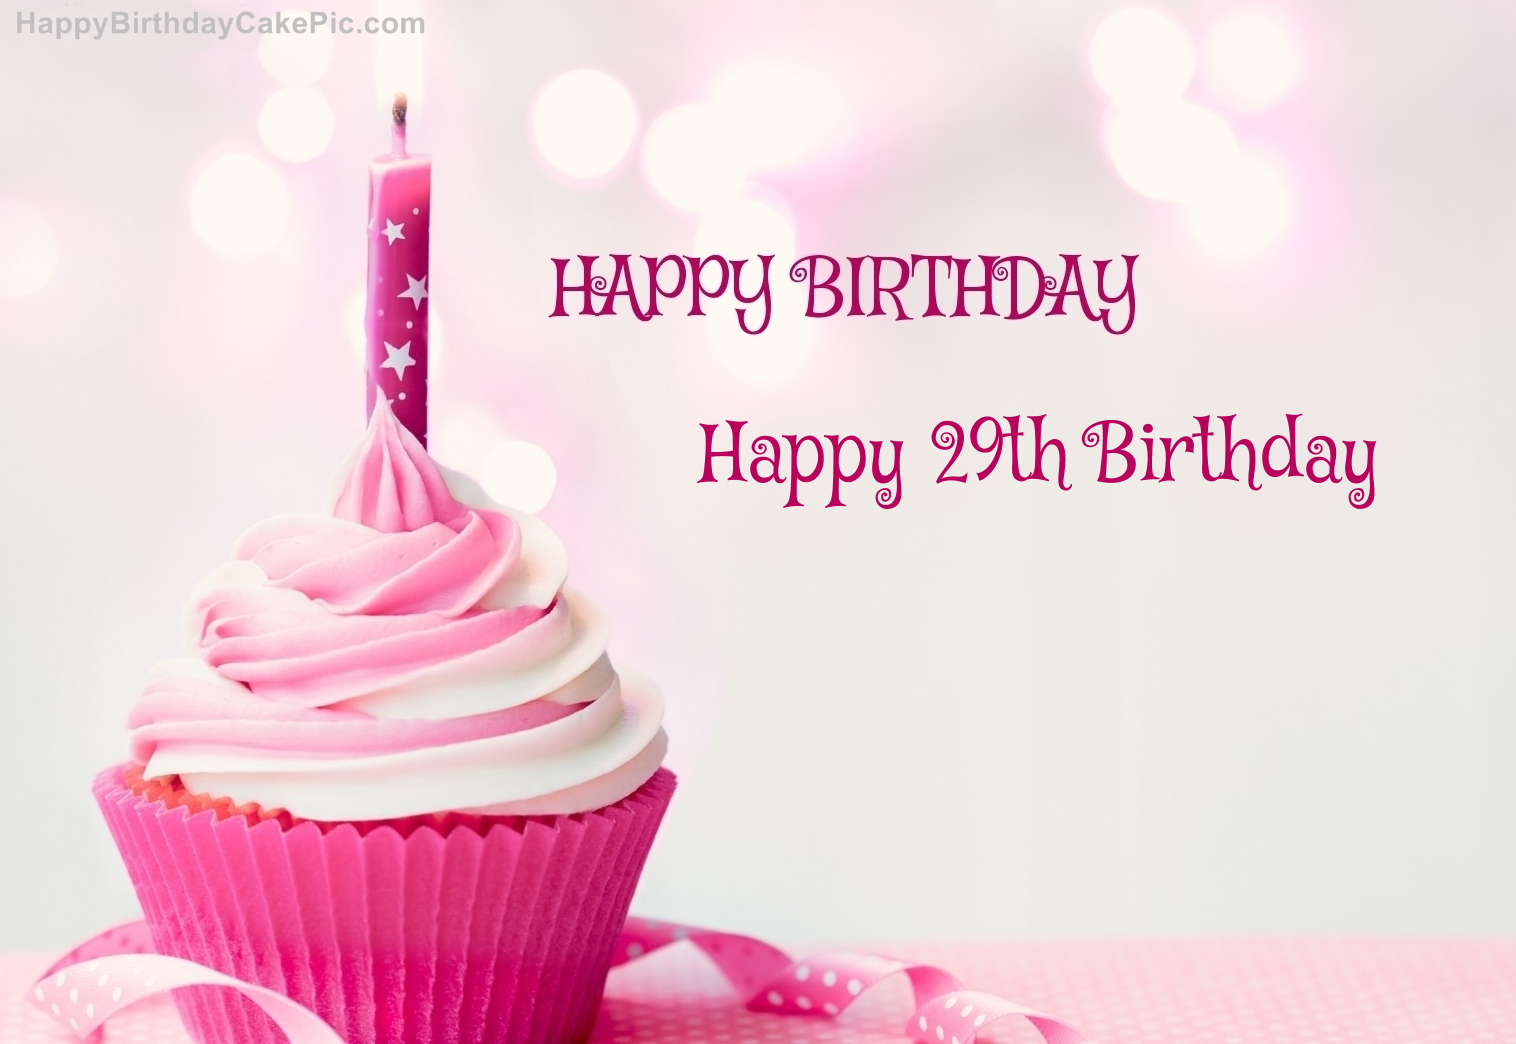 Happy Birthday Cupcake Candle Pink Cake For Happy 29th Birthday